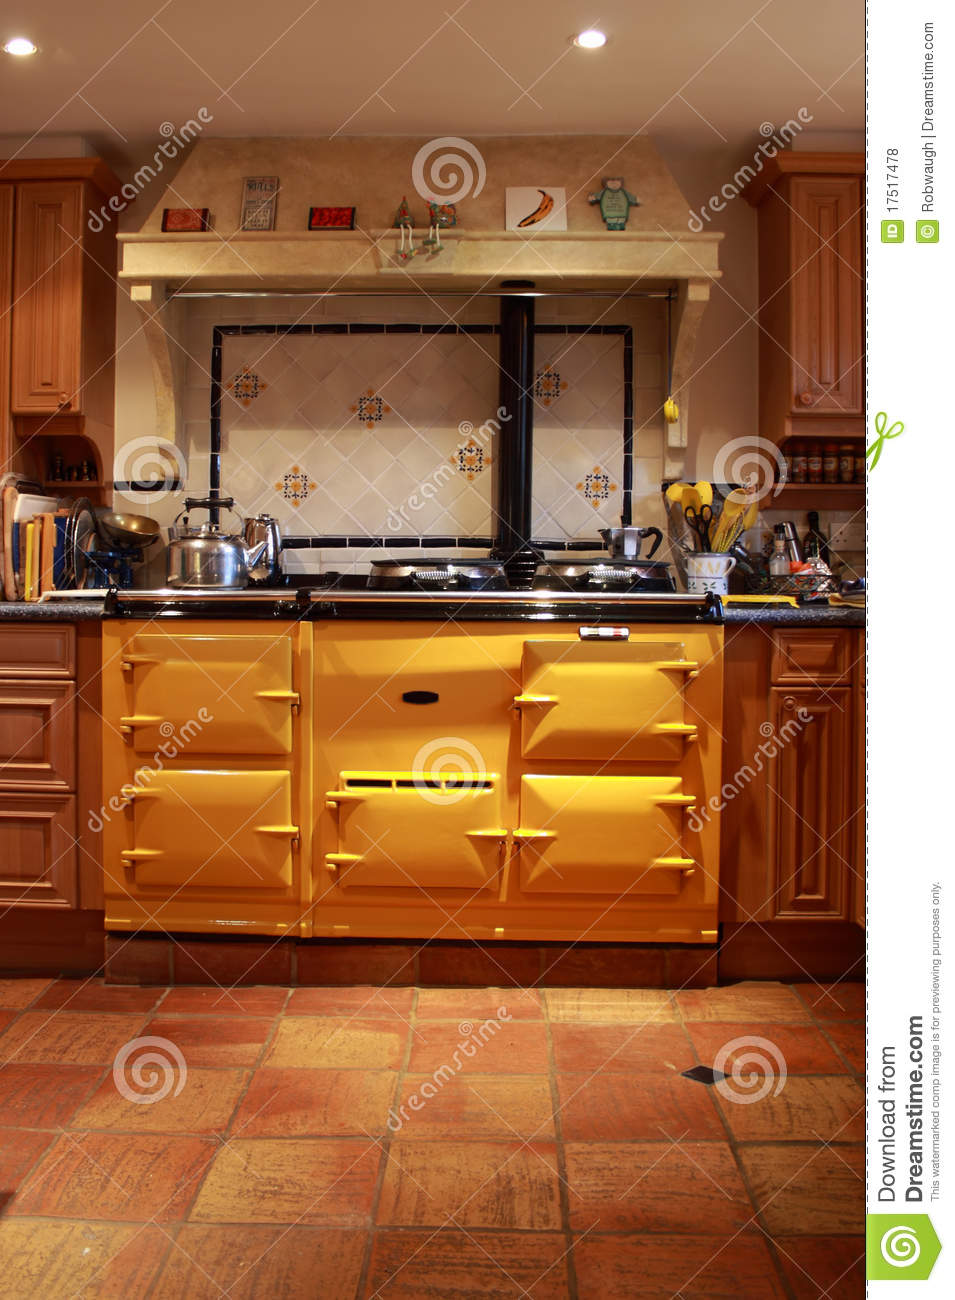 Yellow Range Oven In A Lovely Kitchen Stock Photo Image